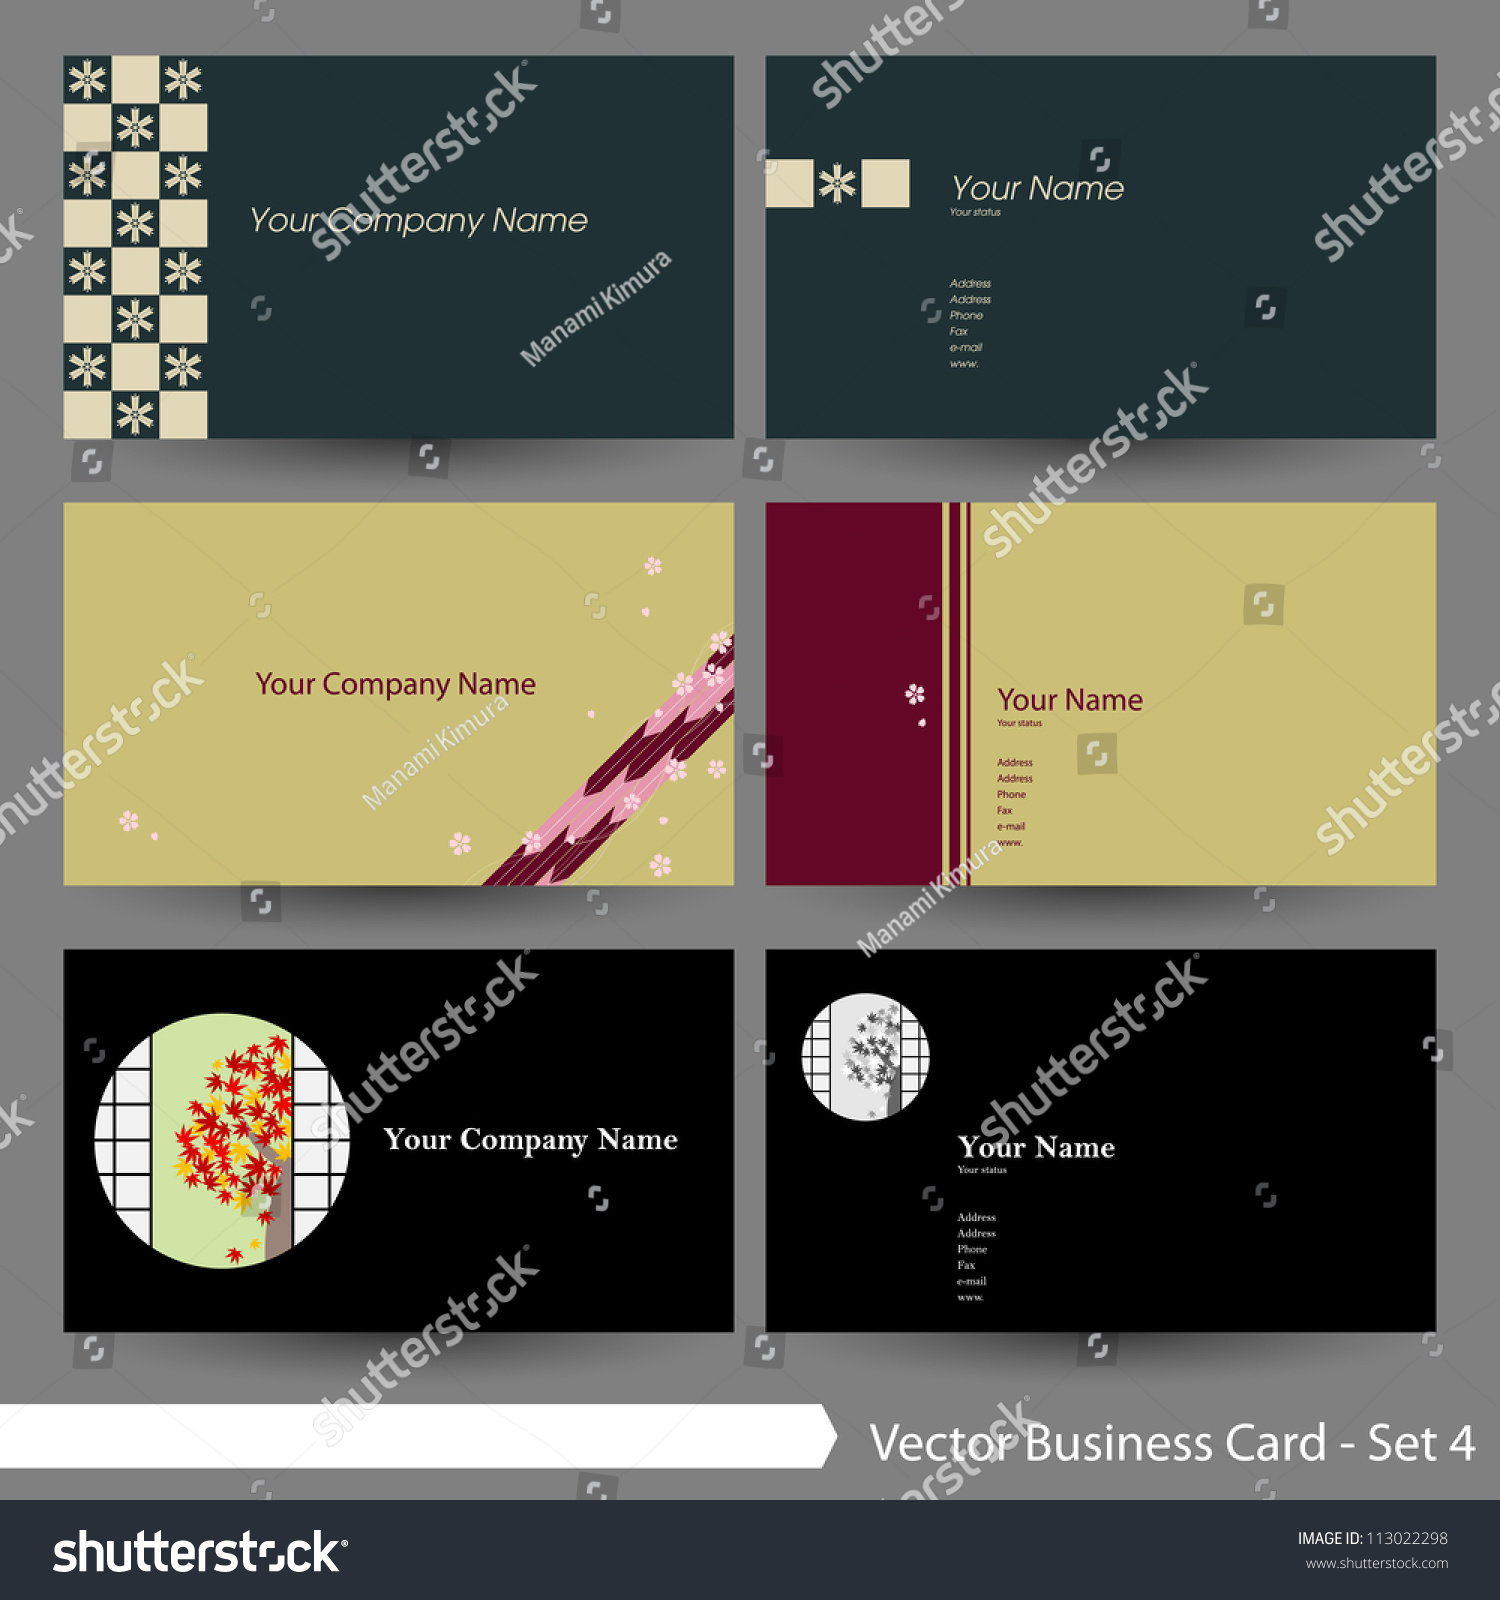 Vector Business Card Template Set Clean Stock Vector 113022298 ...